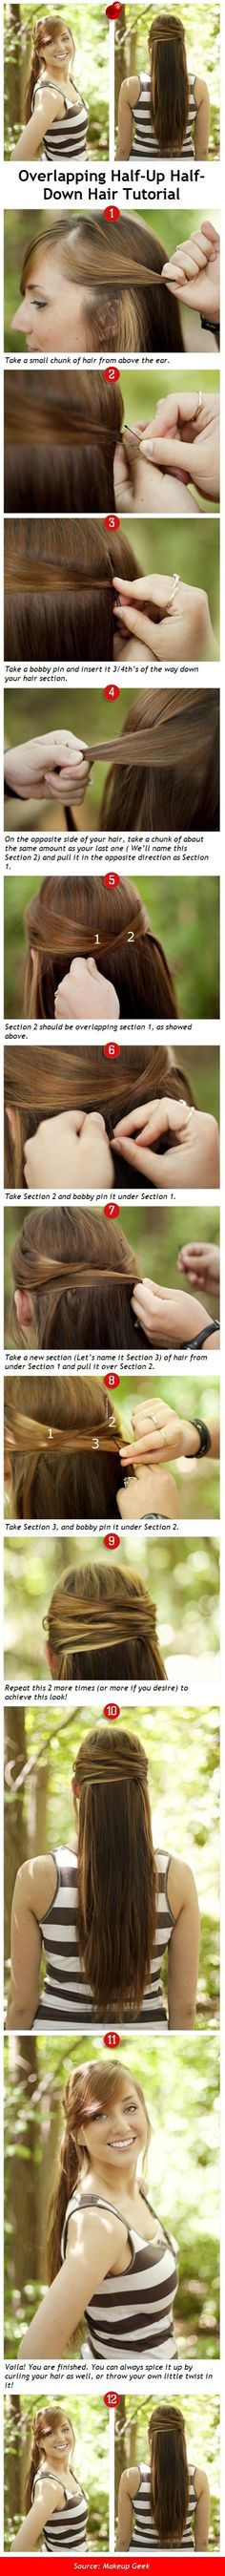 Overlapping Half-Up Half-Down Hair Tutorial - Overlapping Half-Up Half-Down Hair Tutorial  Repinly Hair & Beauty Popular Pins